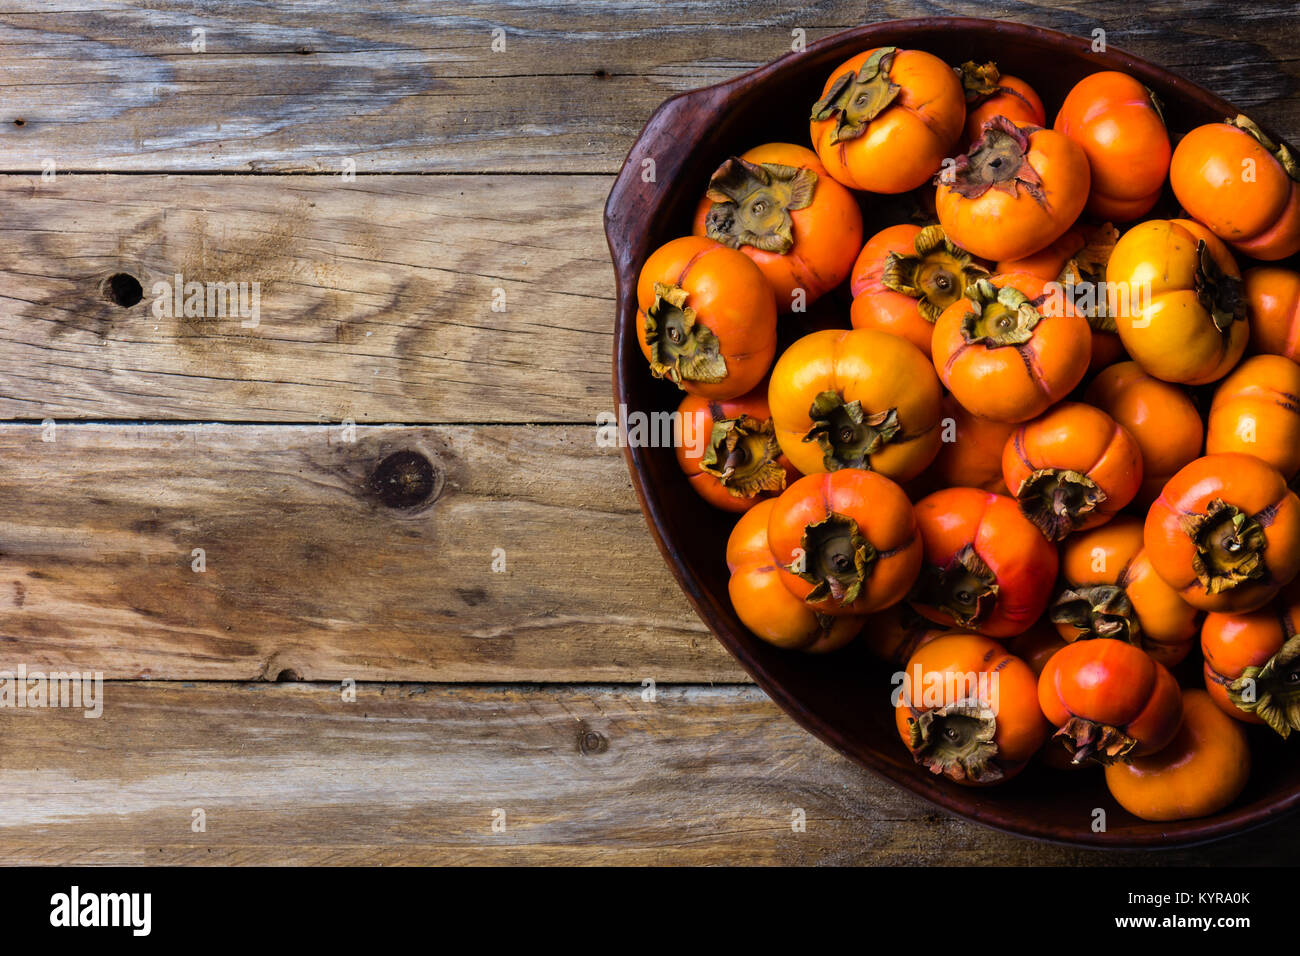 Pot of fresh fruits persimmon kaki on old wooden background. Copy space - Stock Image